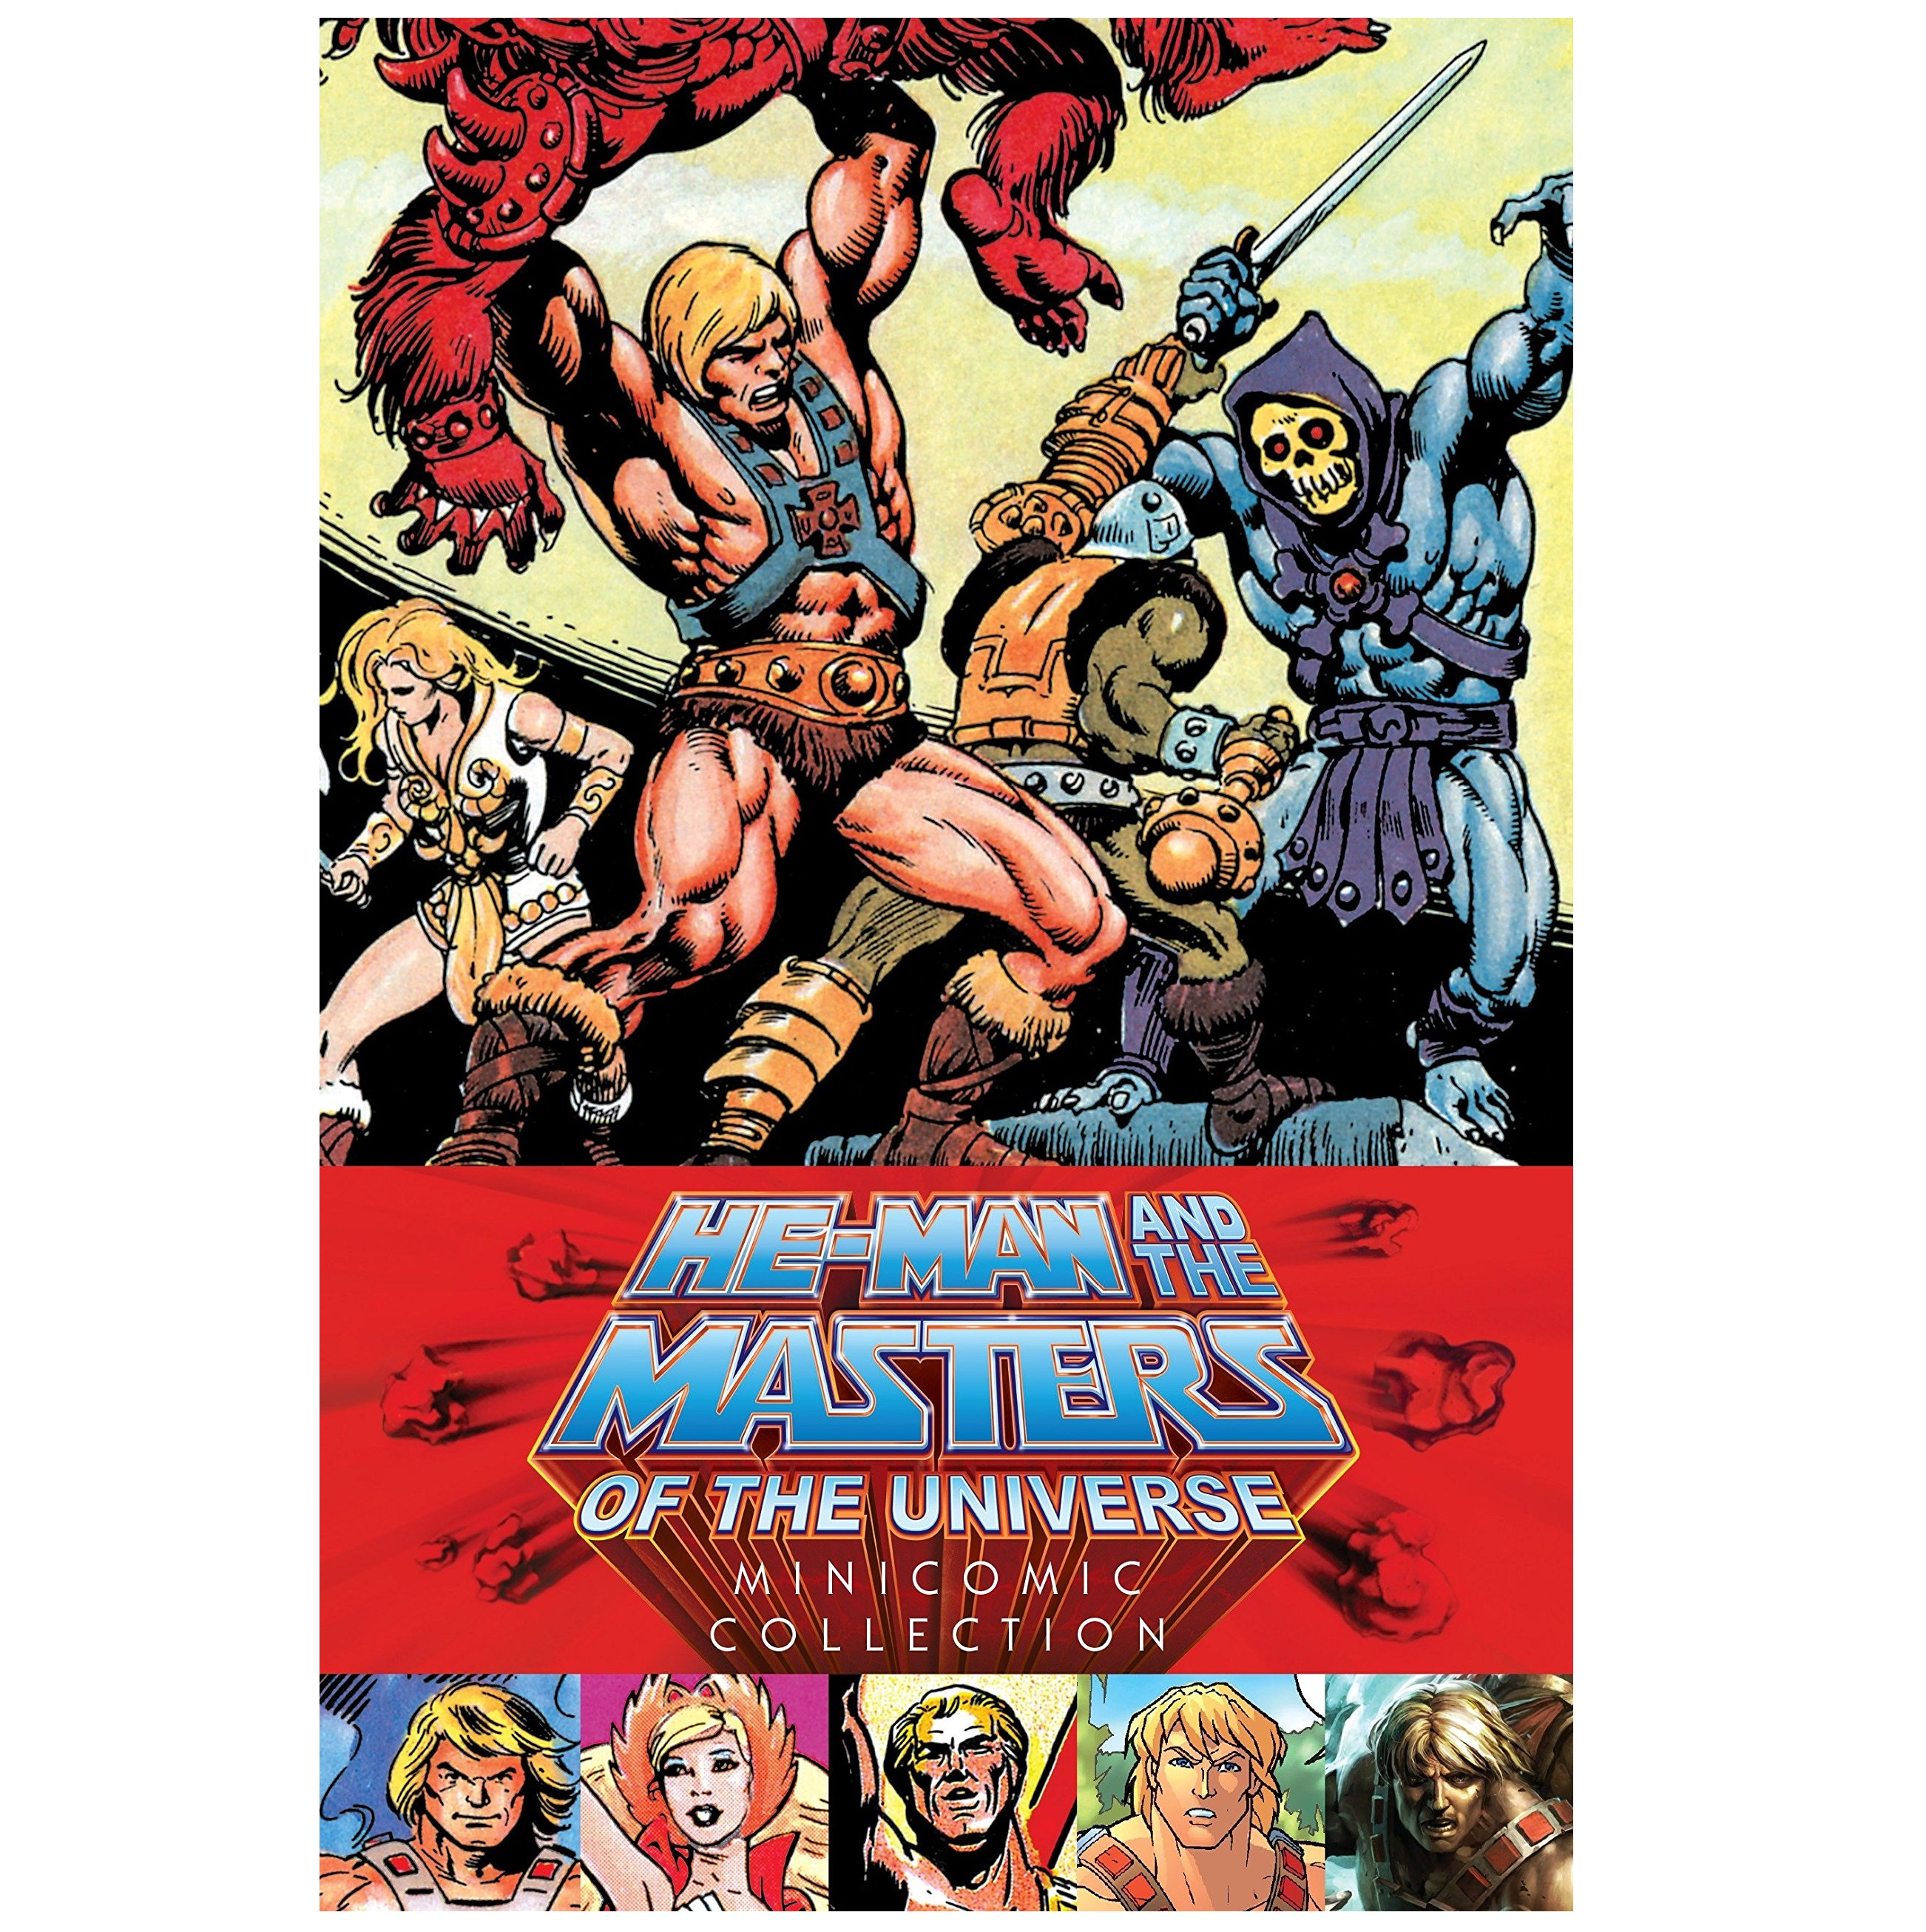 Libro: HE-MAN AND THE MASTERS OF THE UNIVERSE Minicomics Collection